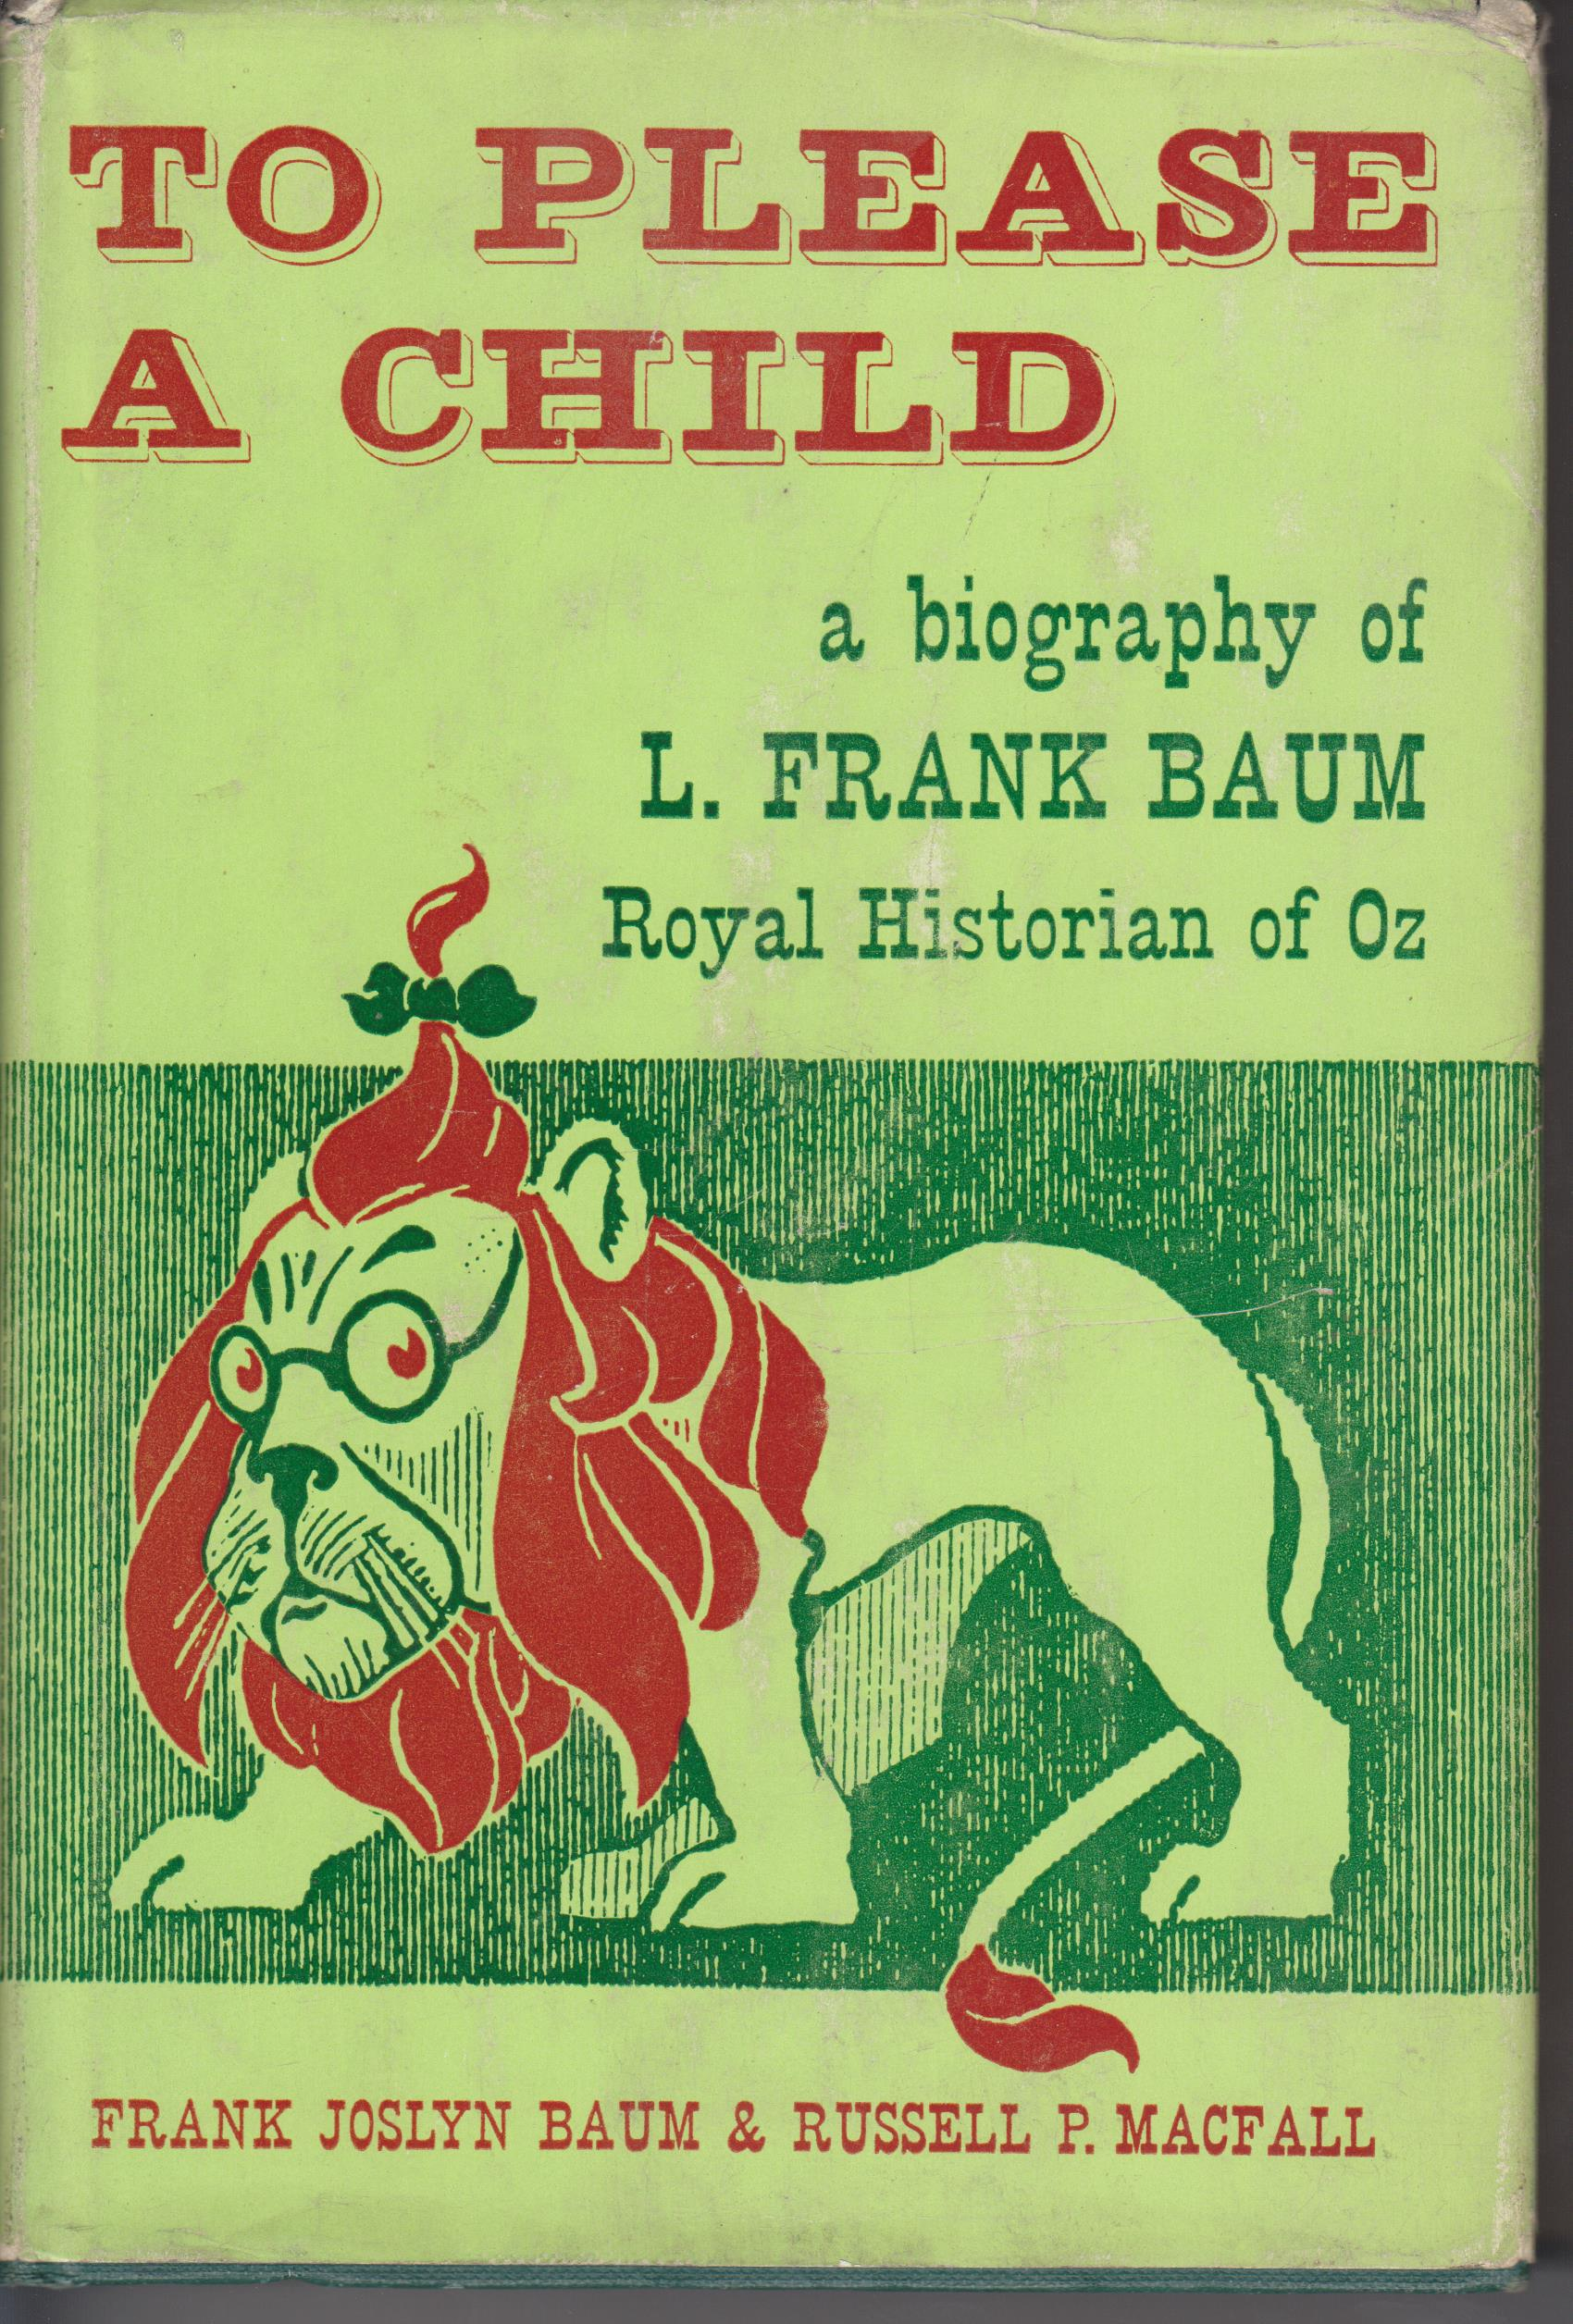 Image for To Please a Child. a Biography of L. Frank Baum, Royal Historian of Ox